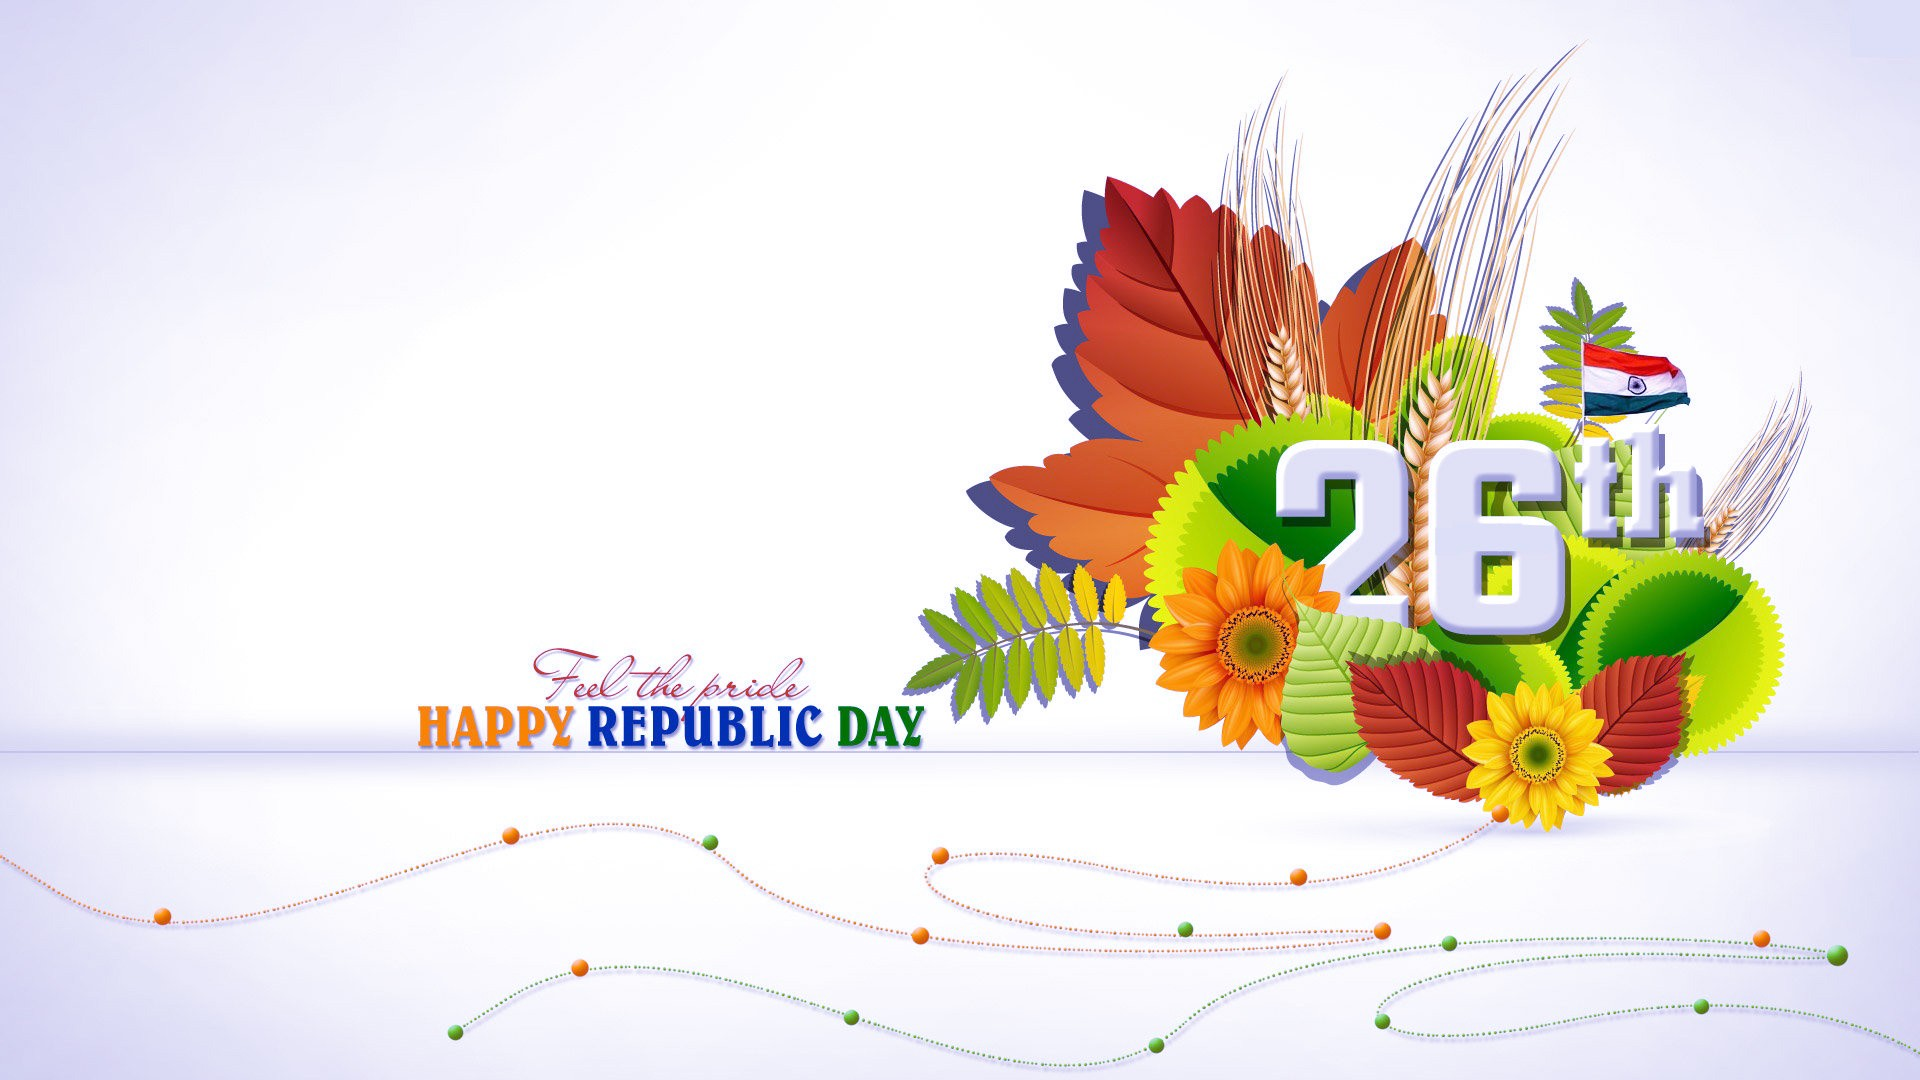 Beautiful Happy Republic Day 2018 Greetings For Share To Everyone